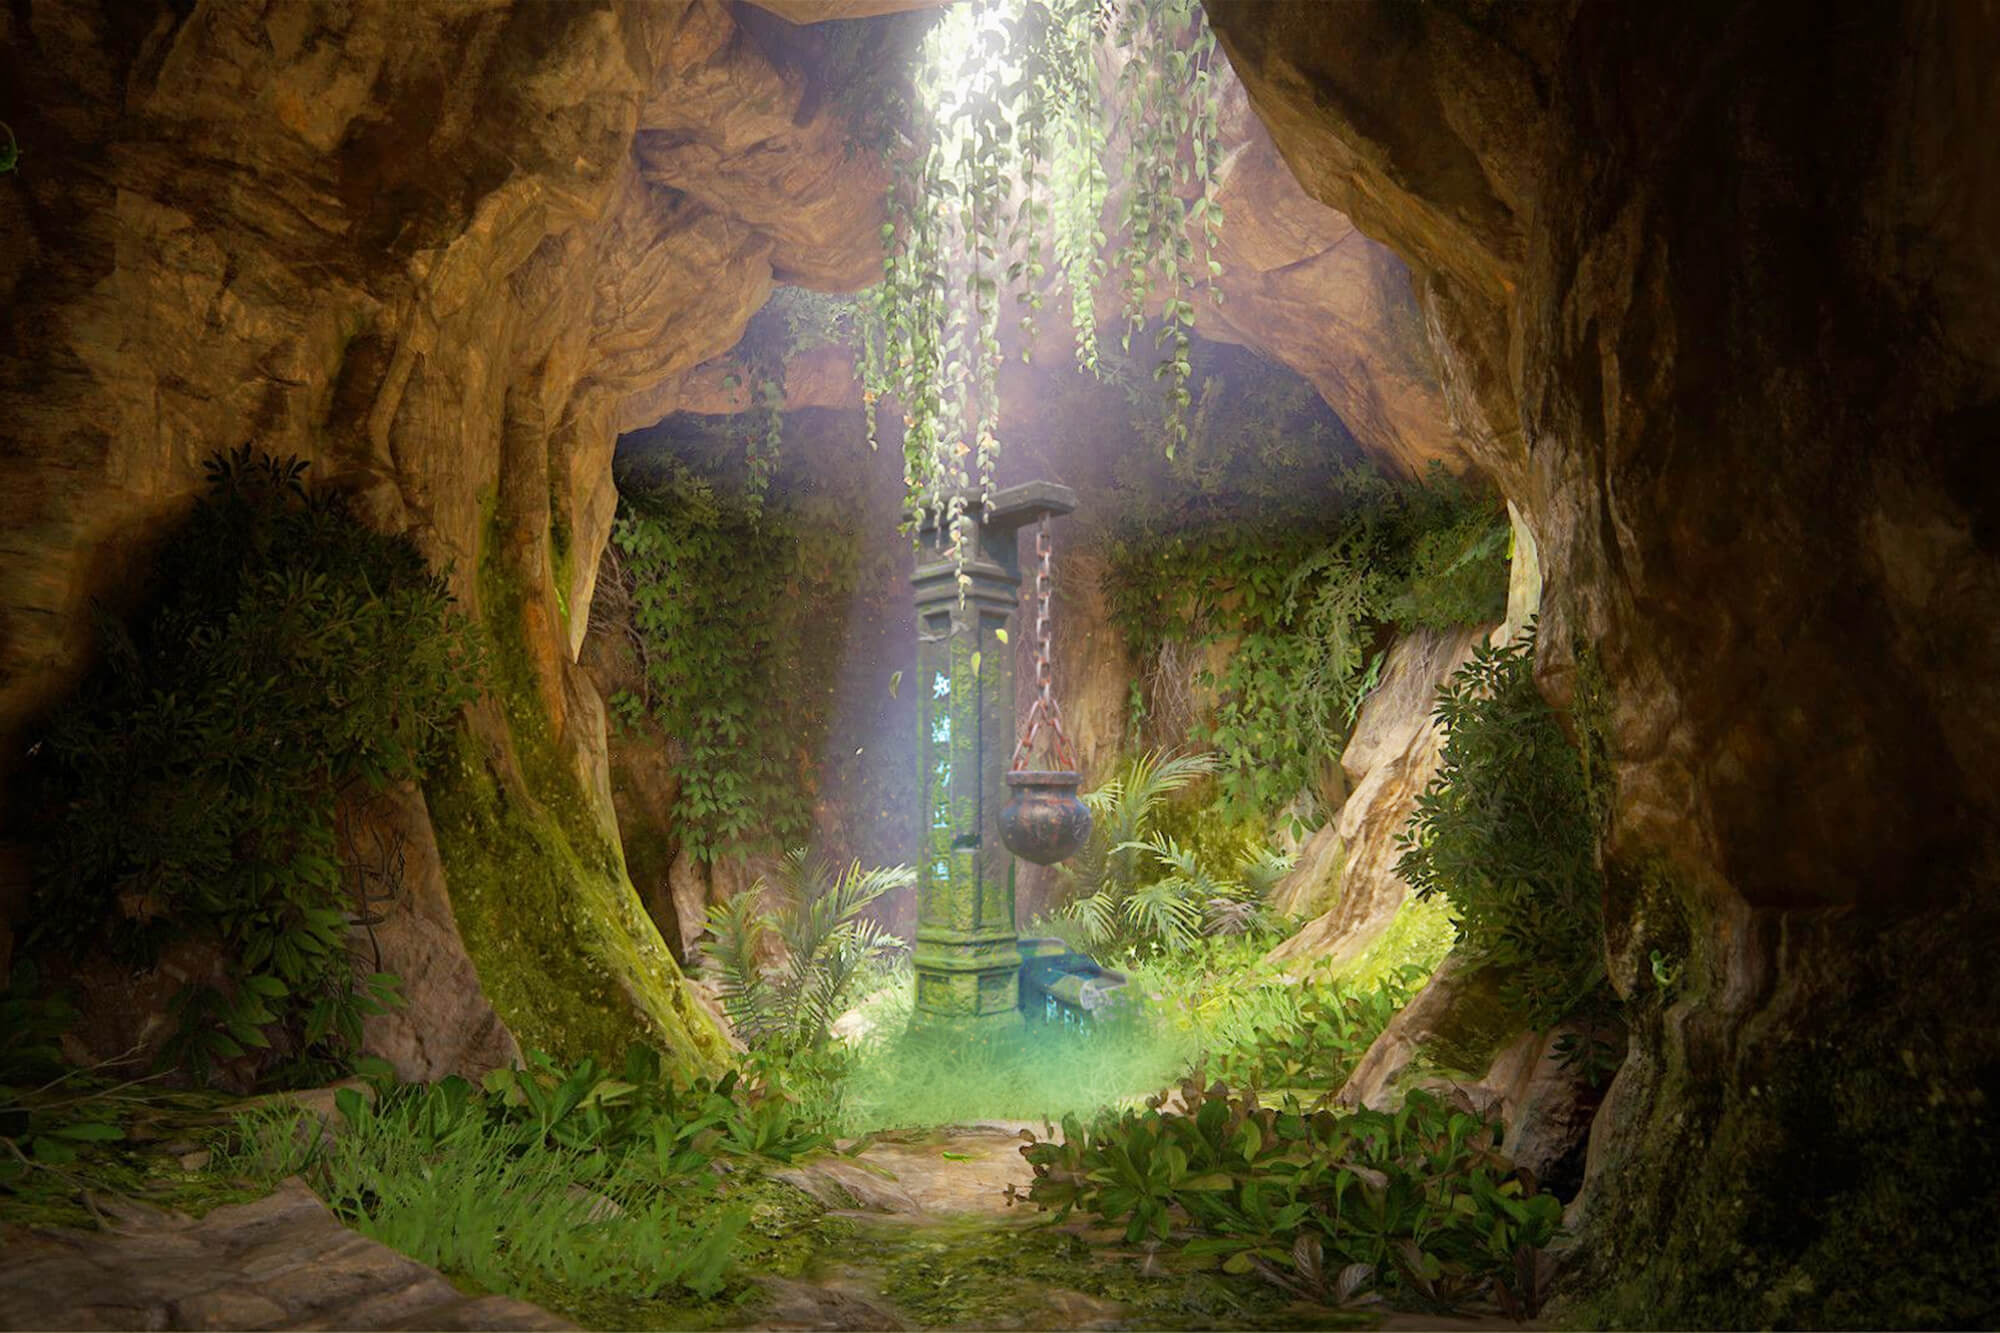 A computer rendered image of a cave with a pot hanging on a concrete pillar